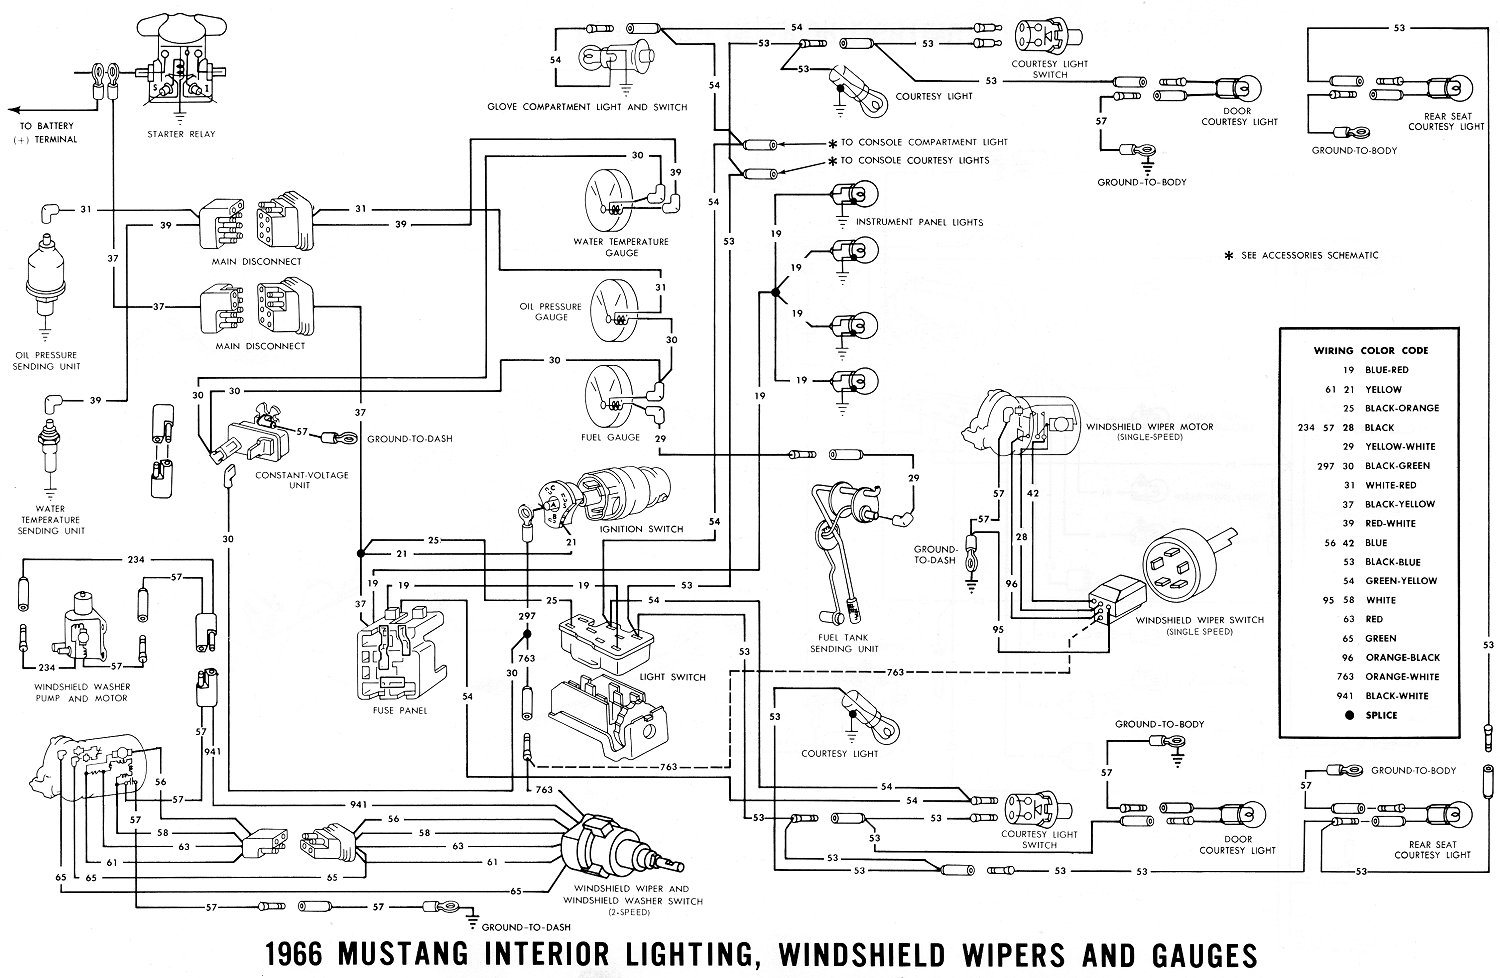 vintage mustang wiring diagrams rh midlife66 com 1967 mustang wiring diagram manual 67 mustang wiring diagram